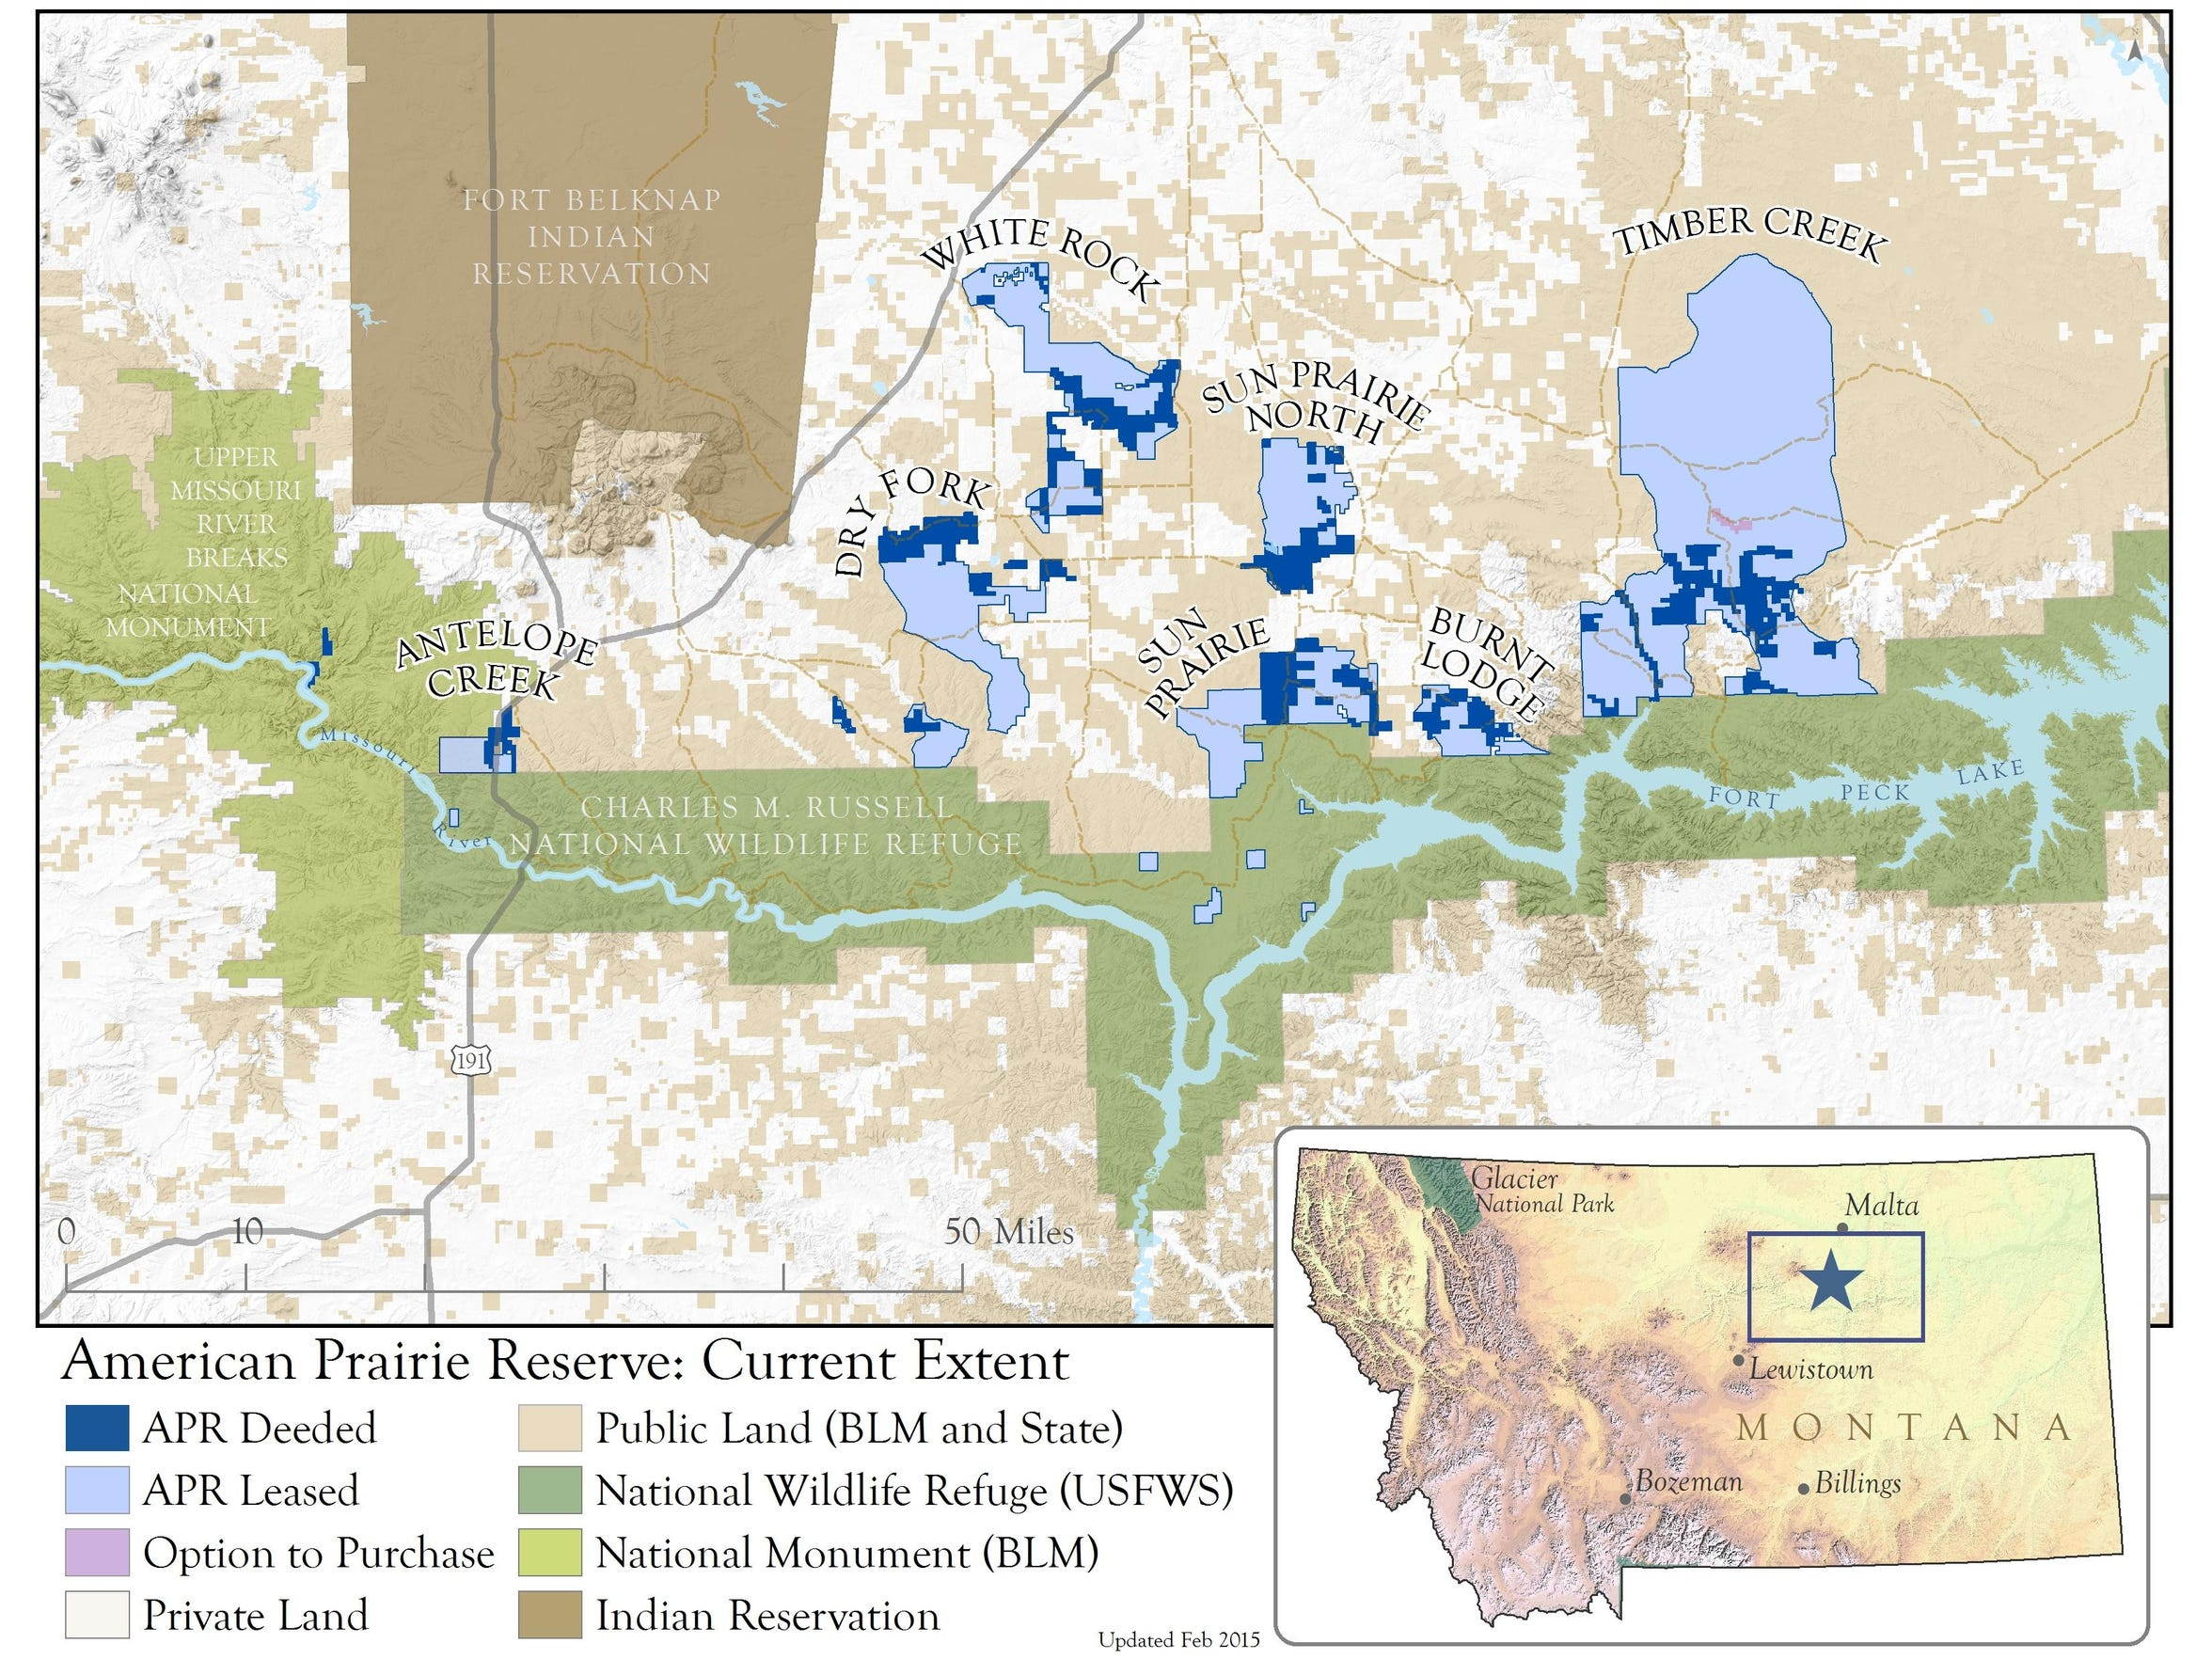 Blue on a map highlights areas of the American Prairie